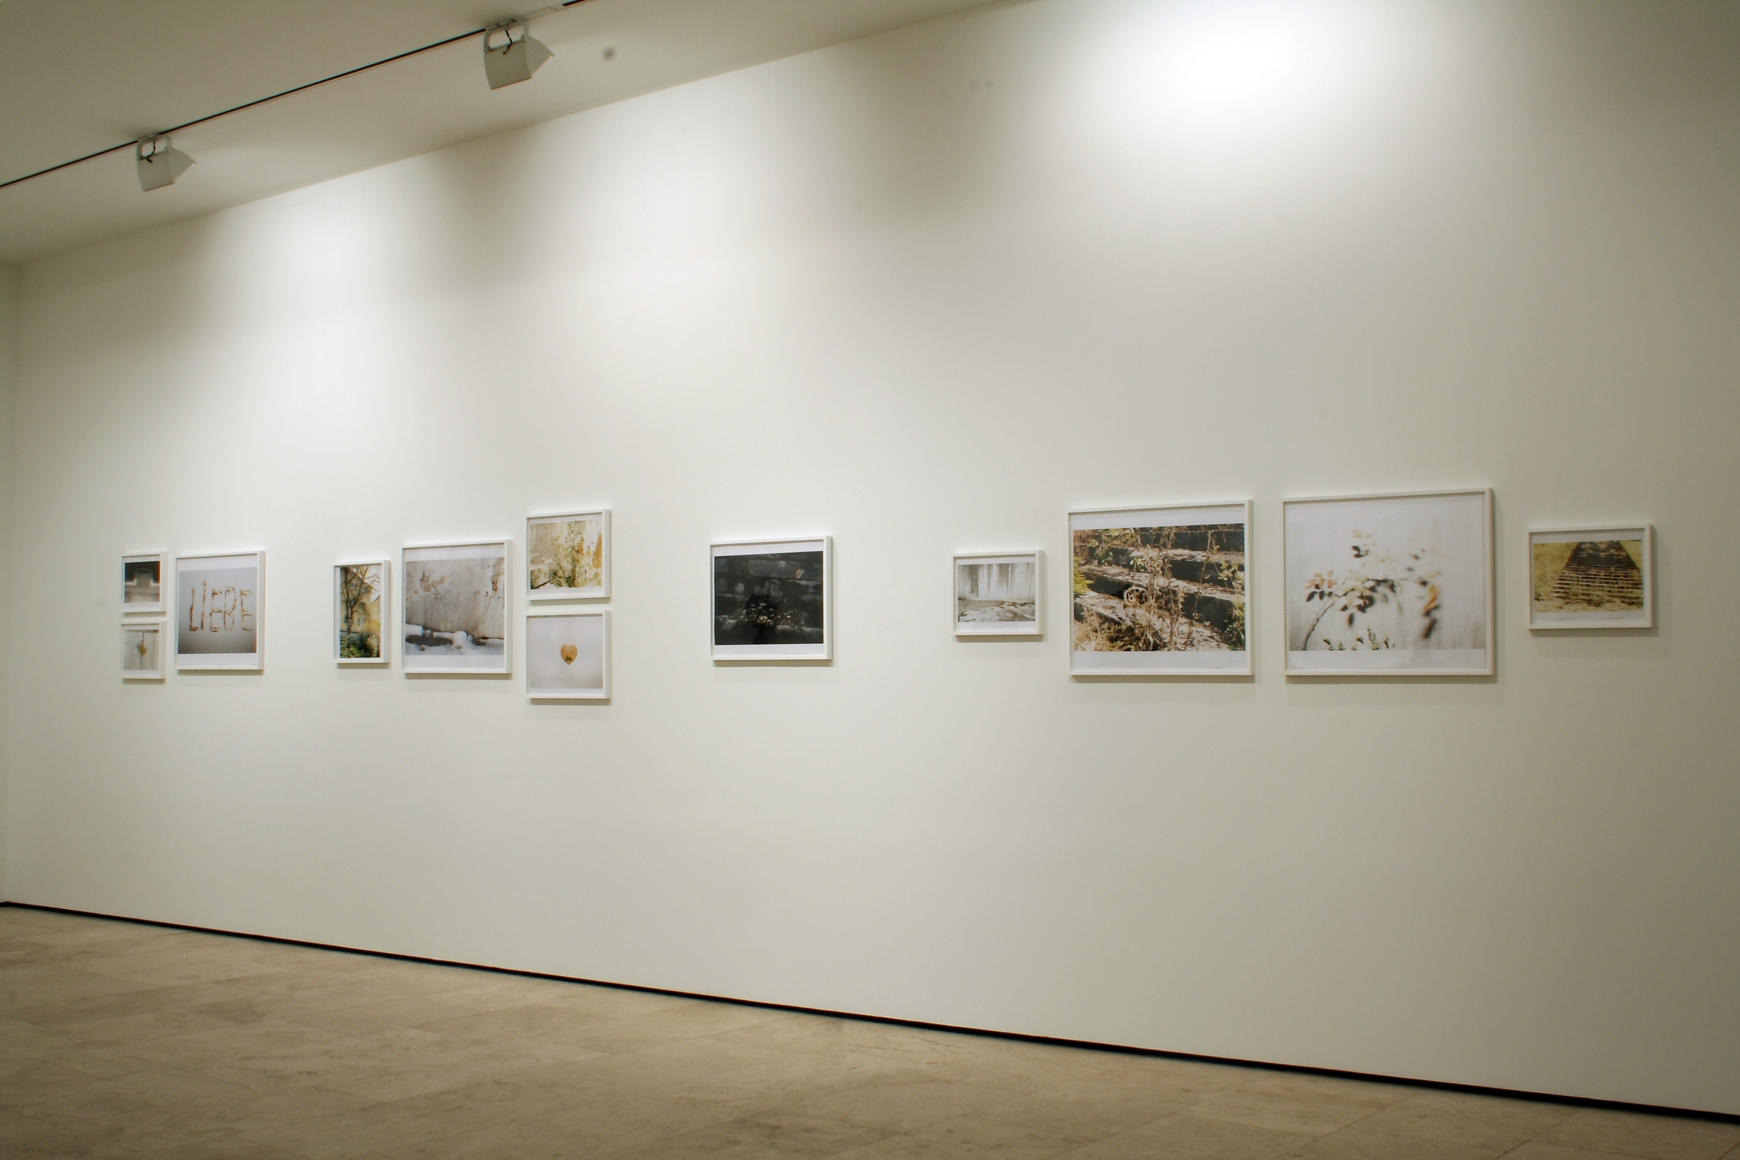 PARTIAL RECALL Installation View 6